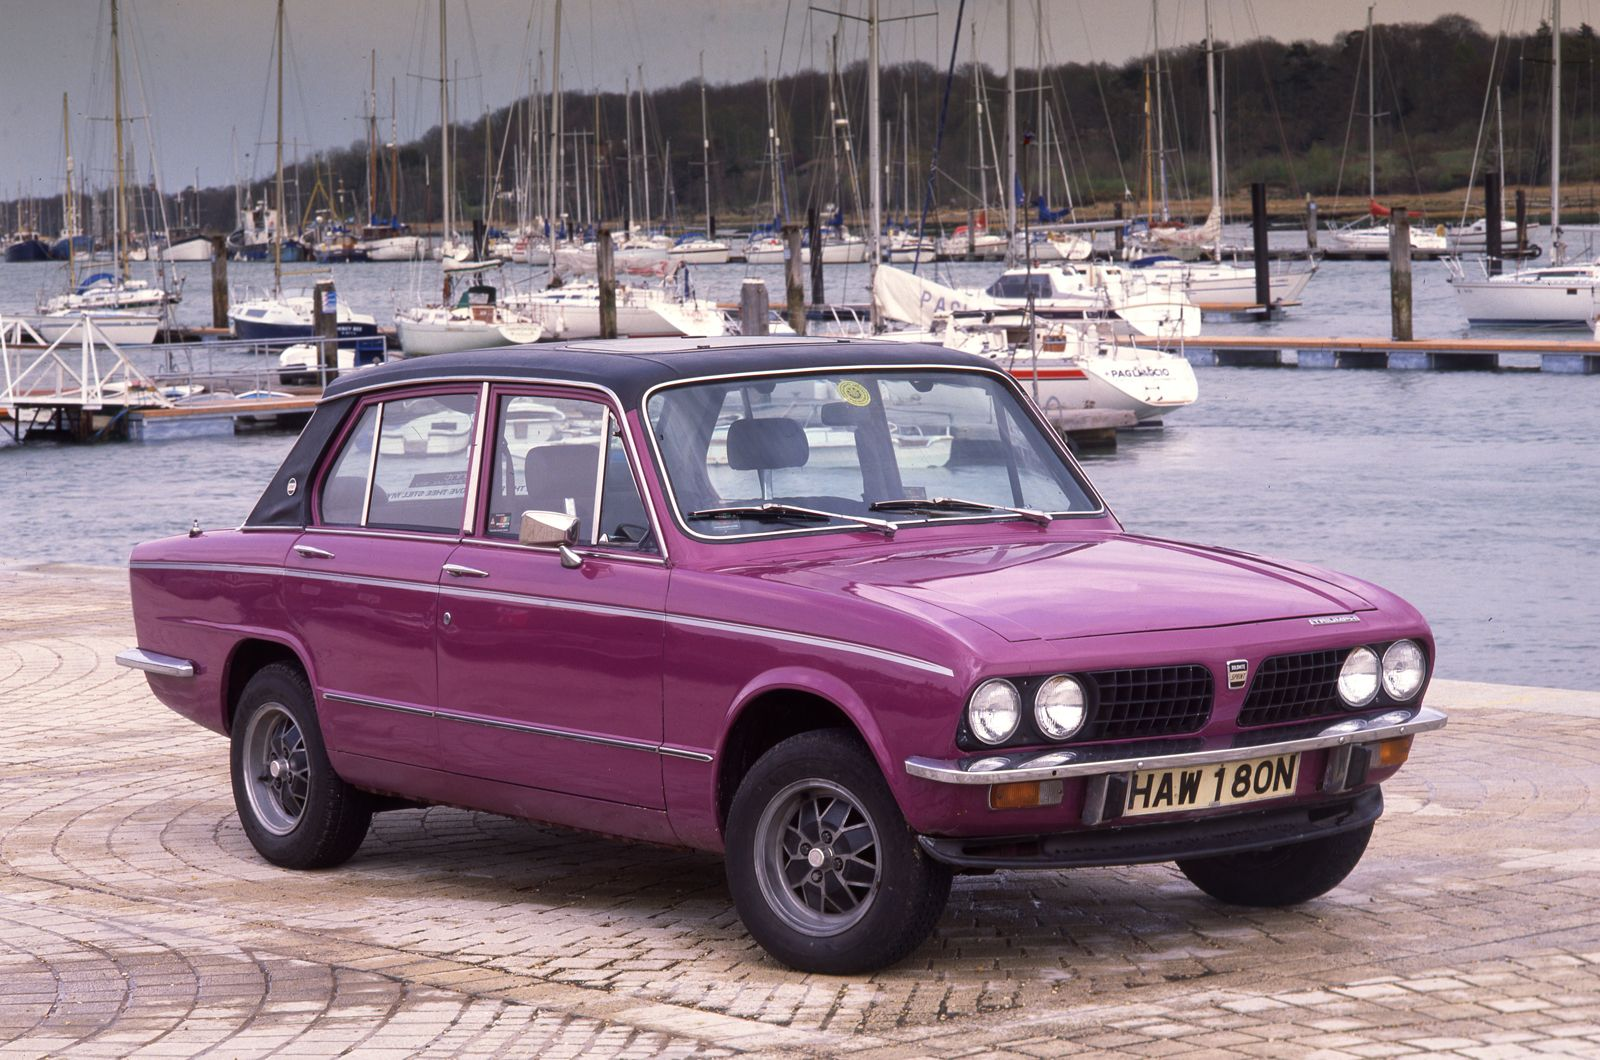 The top 100 best-ever British cars | Vintage Cars & Old School ...